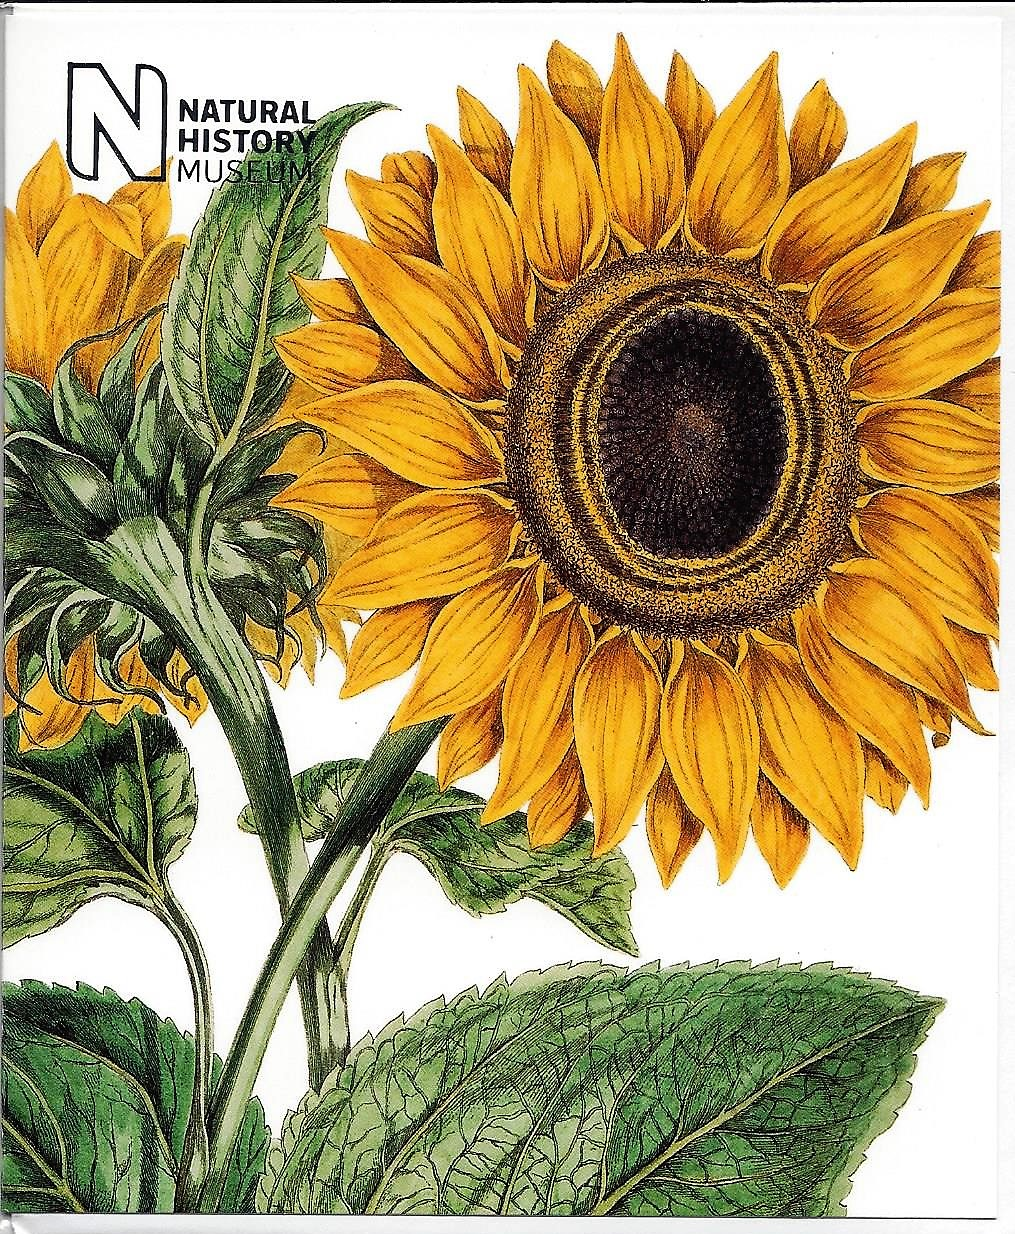 Image for Helianthus annus, Sunflower ~ John Miller 91715-c 1790) [NHM 361]